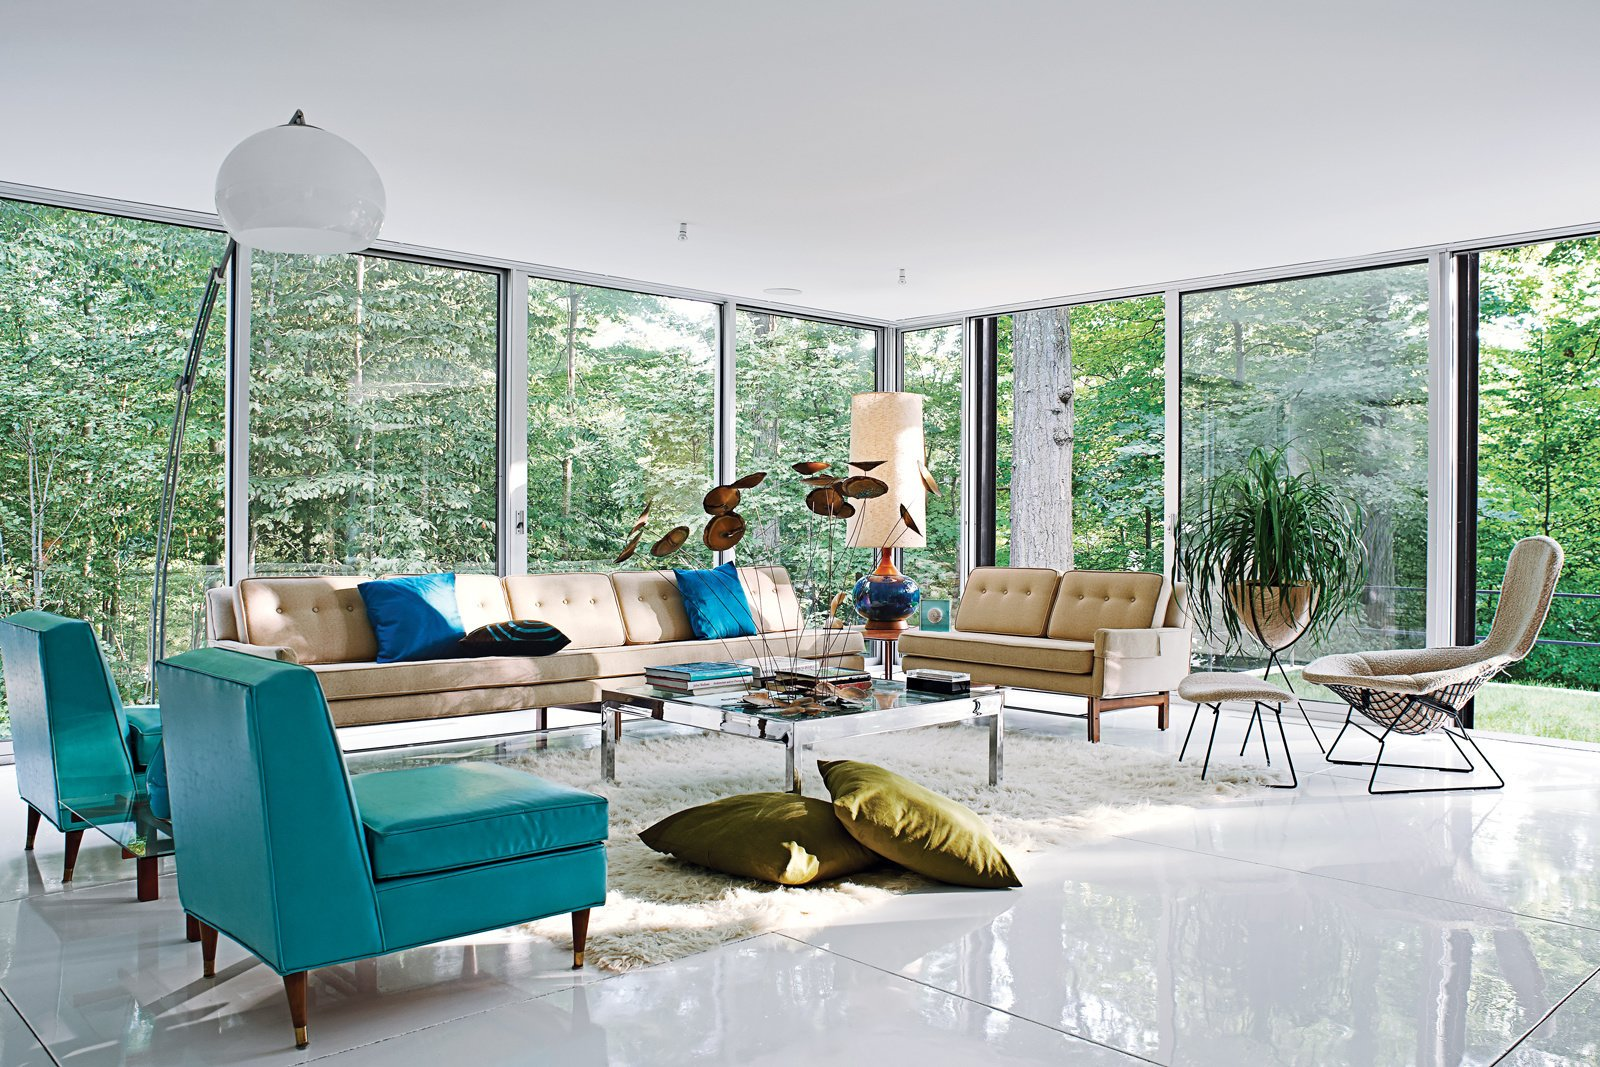 The spacious living room, filled with vintage furnishings by Harry Bertoia, Paul McCobb, overlooks the heavily wooded site, which adjoins a protected watershed. Photo by: Jason Schmidt  47+ Midcentury Modern Homes Across America by Luke Hopping from Blues Clues